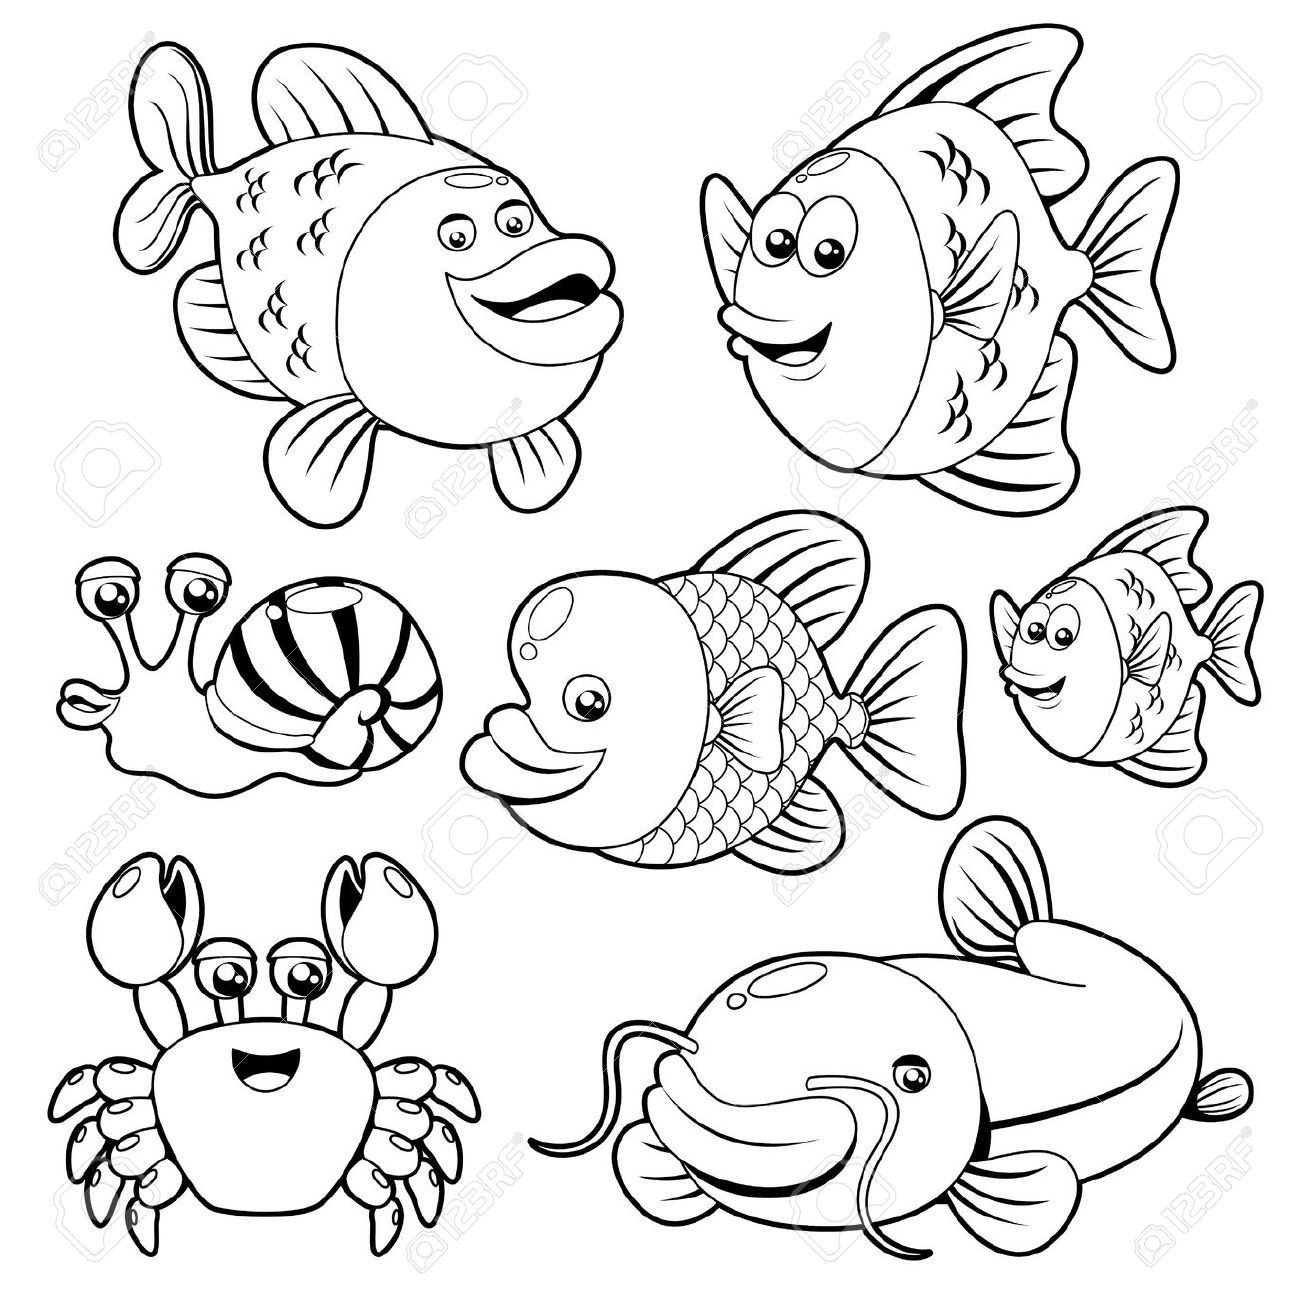 Black and white sea creatures clipart image freeuse stock Ocean Animals Clipart Black And White Fishs black and white ... image freeuse stock